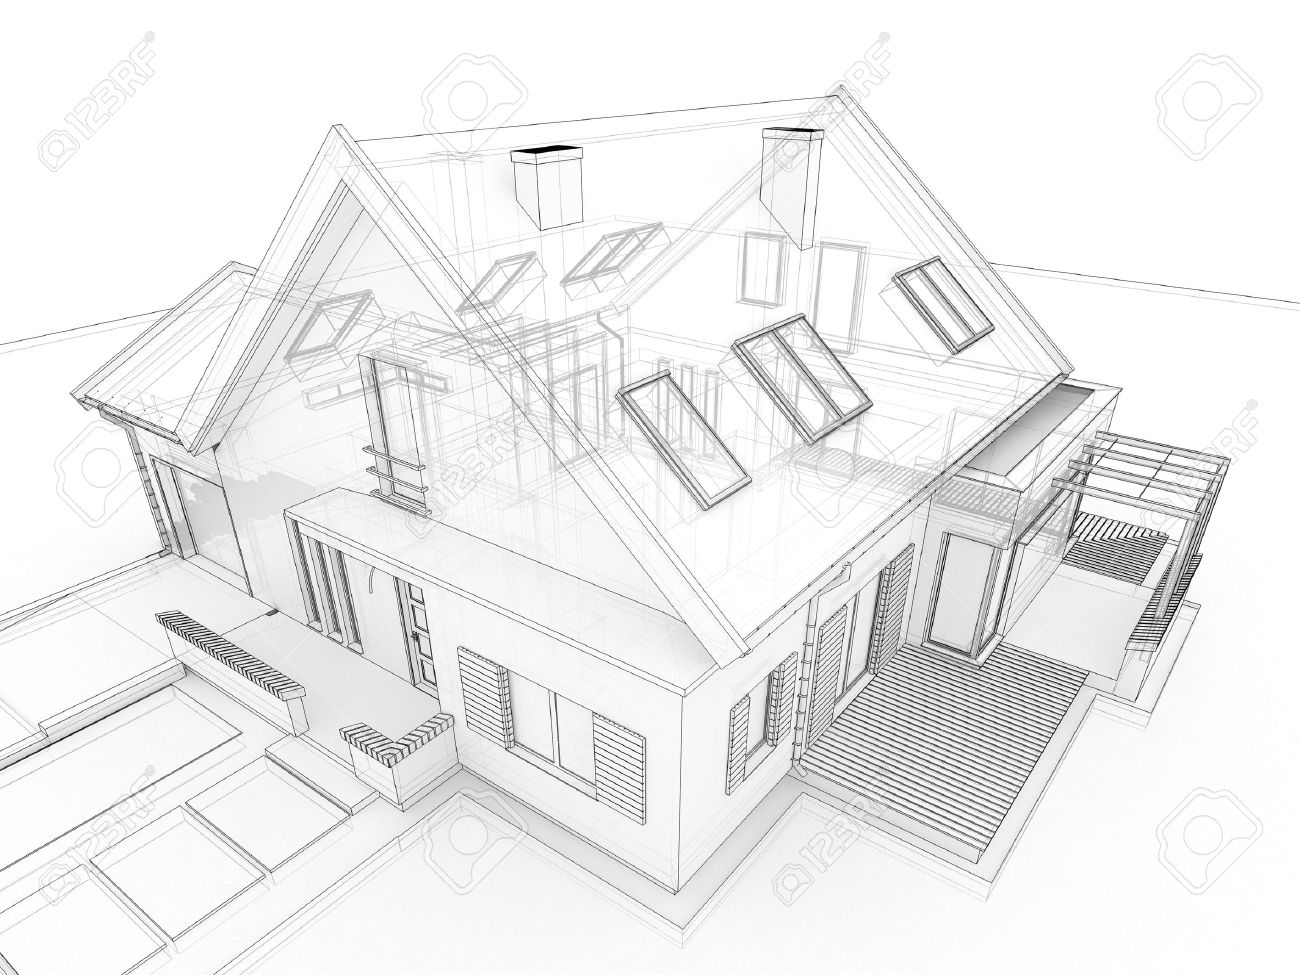 House design drawing - Computer Generated Transparent House Design Visualization In Drawing Style Stock Photo 16153205